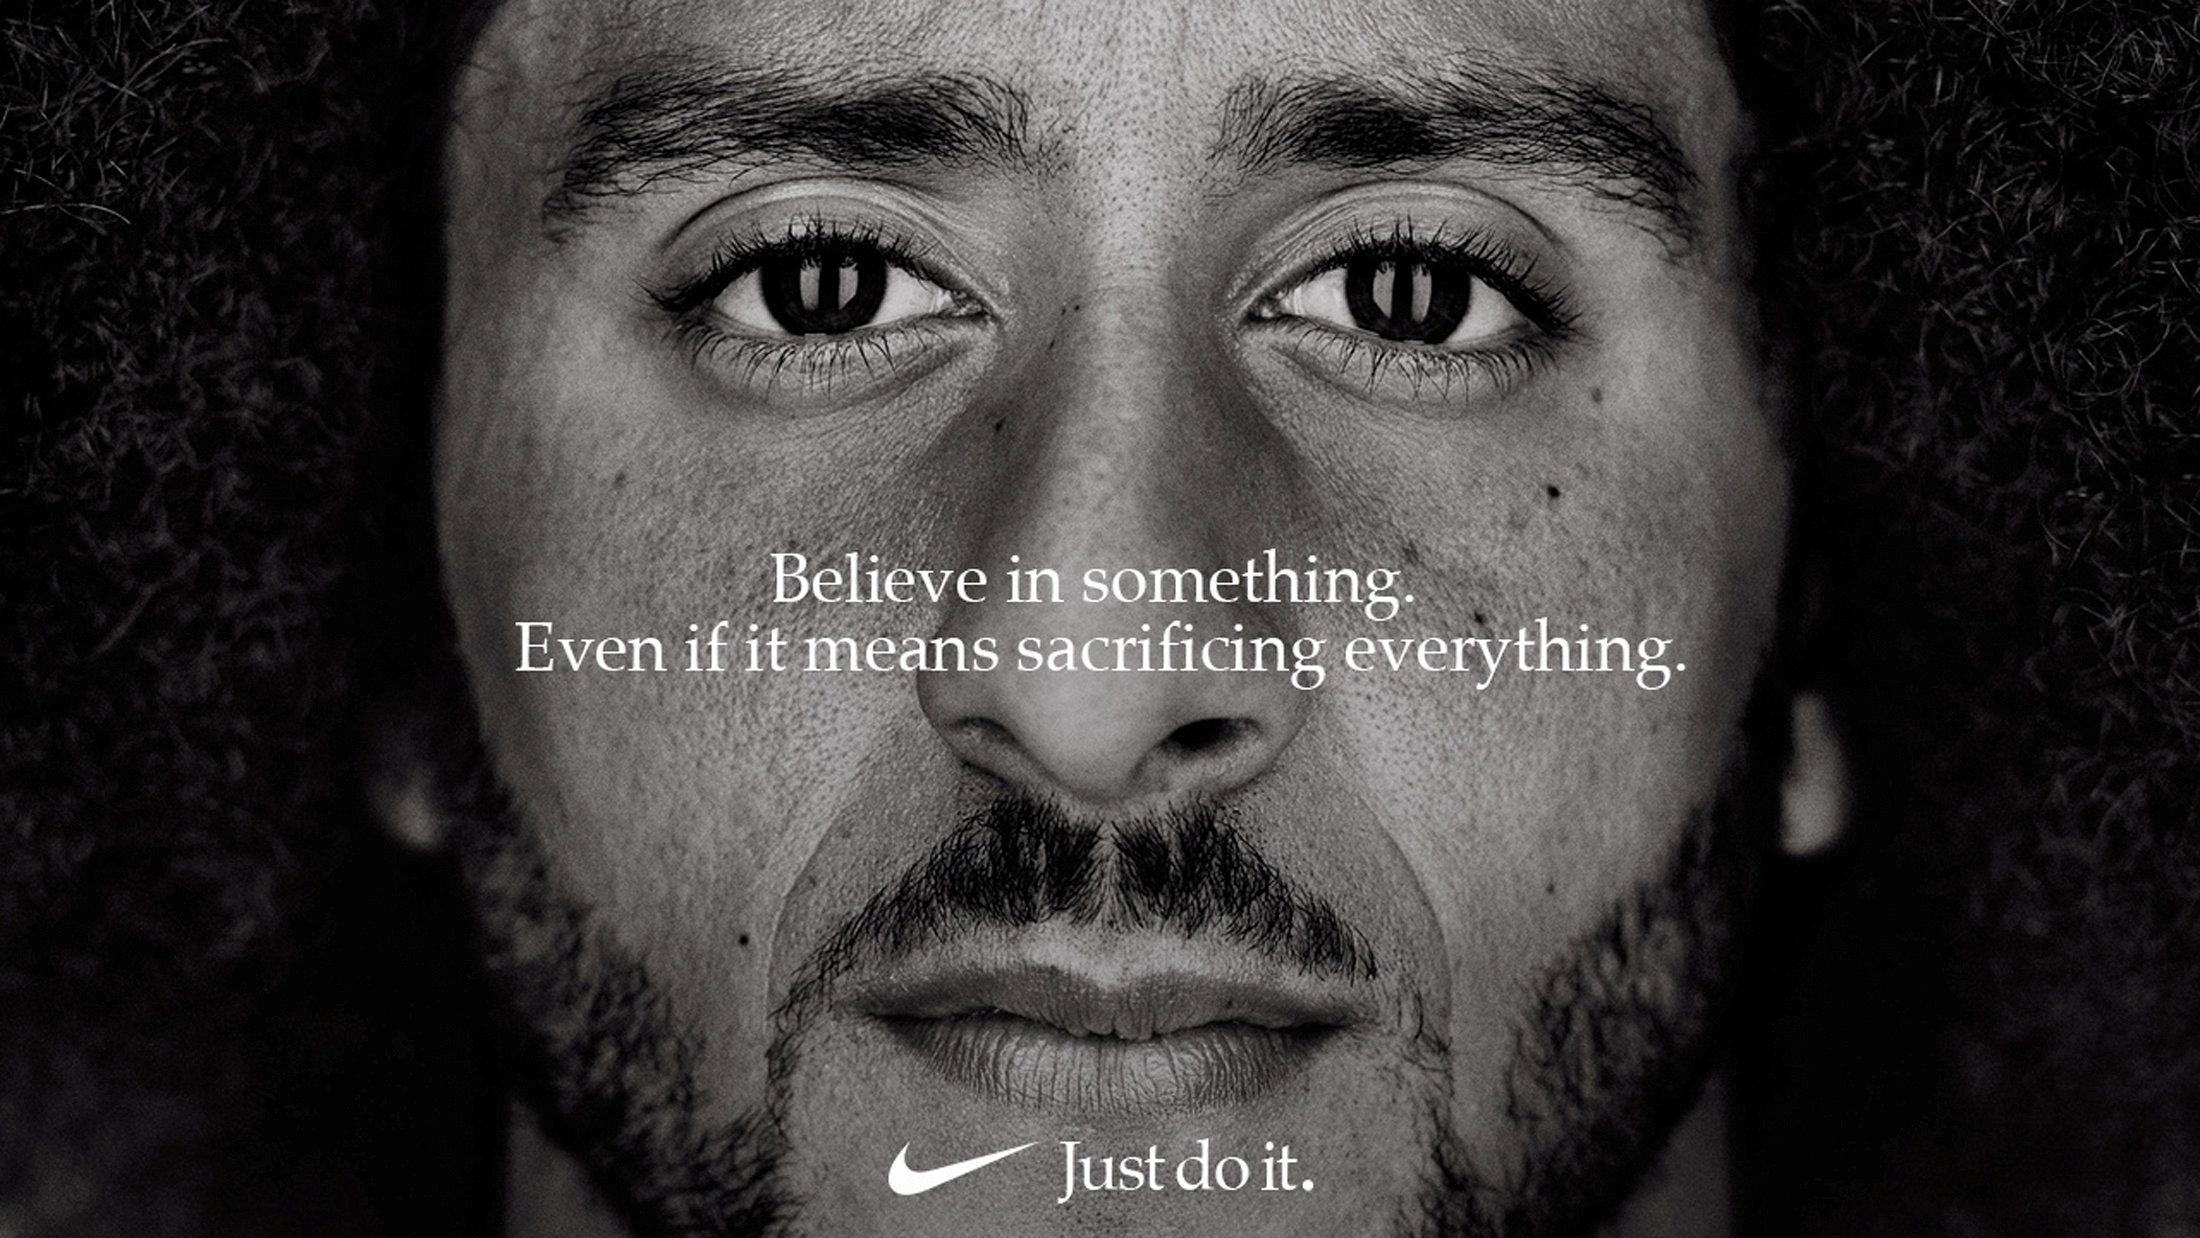 d4c381345e1664 Nike Called Out for Low Wages in Asia Amid Colin Kaepernick Ad Promotion